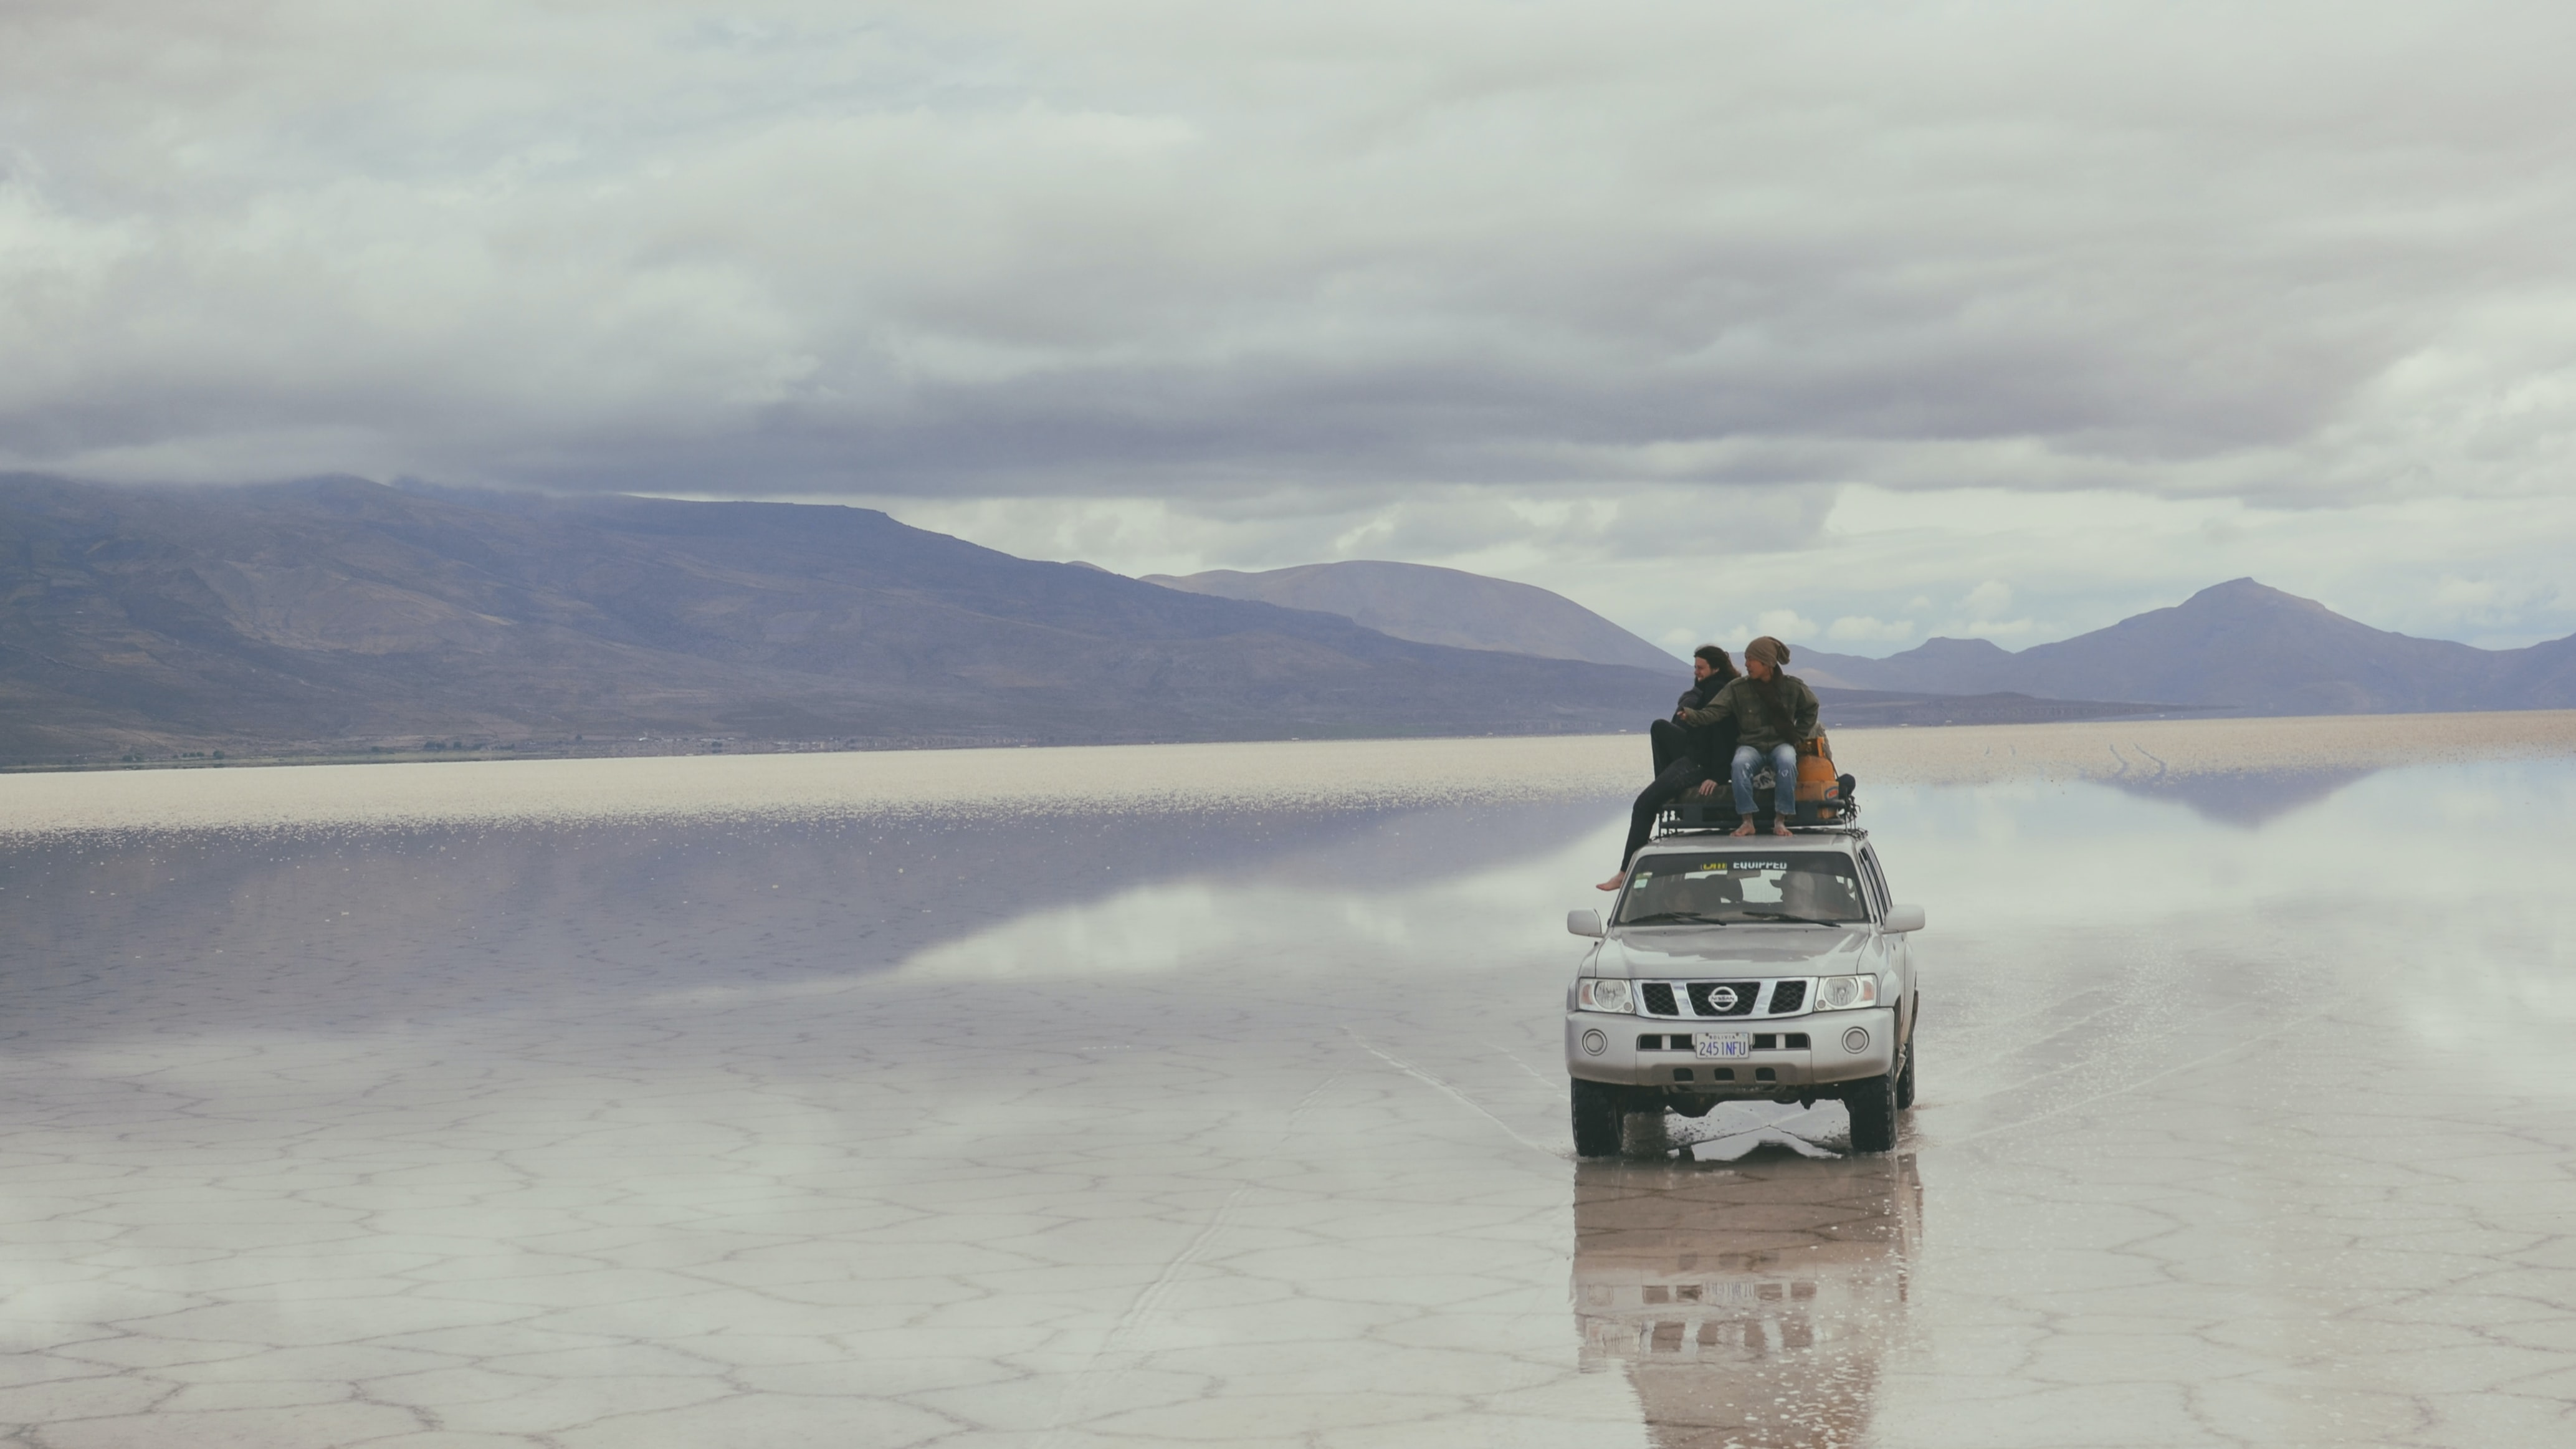 Two people sat on the roof of a silver Nissan jeep on a salt flat, Uyuni